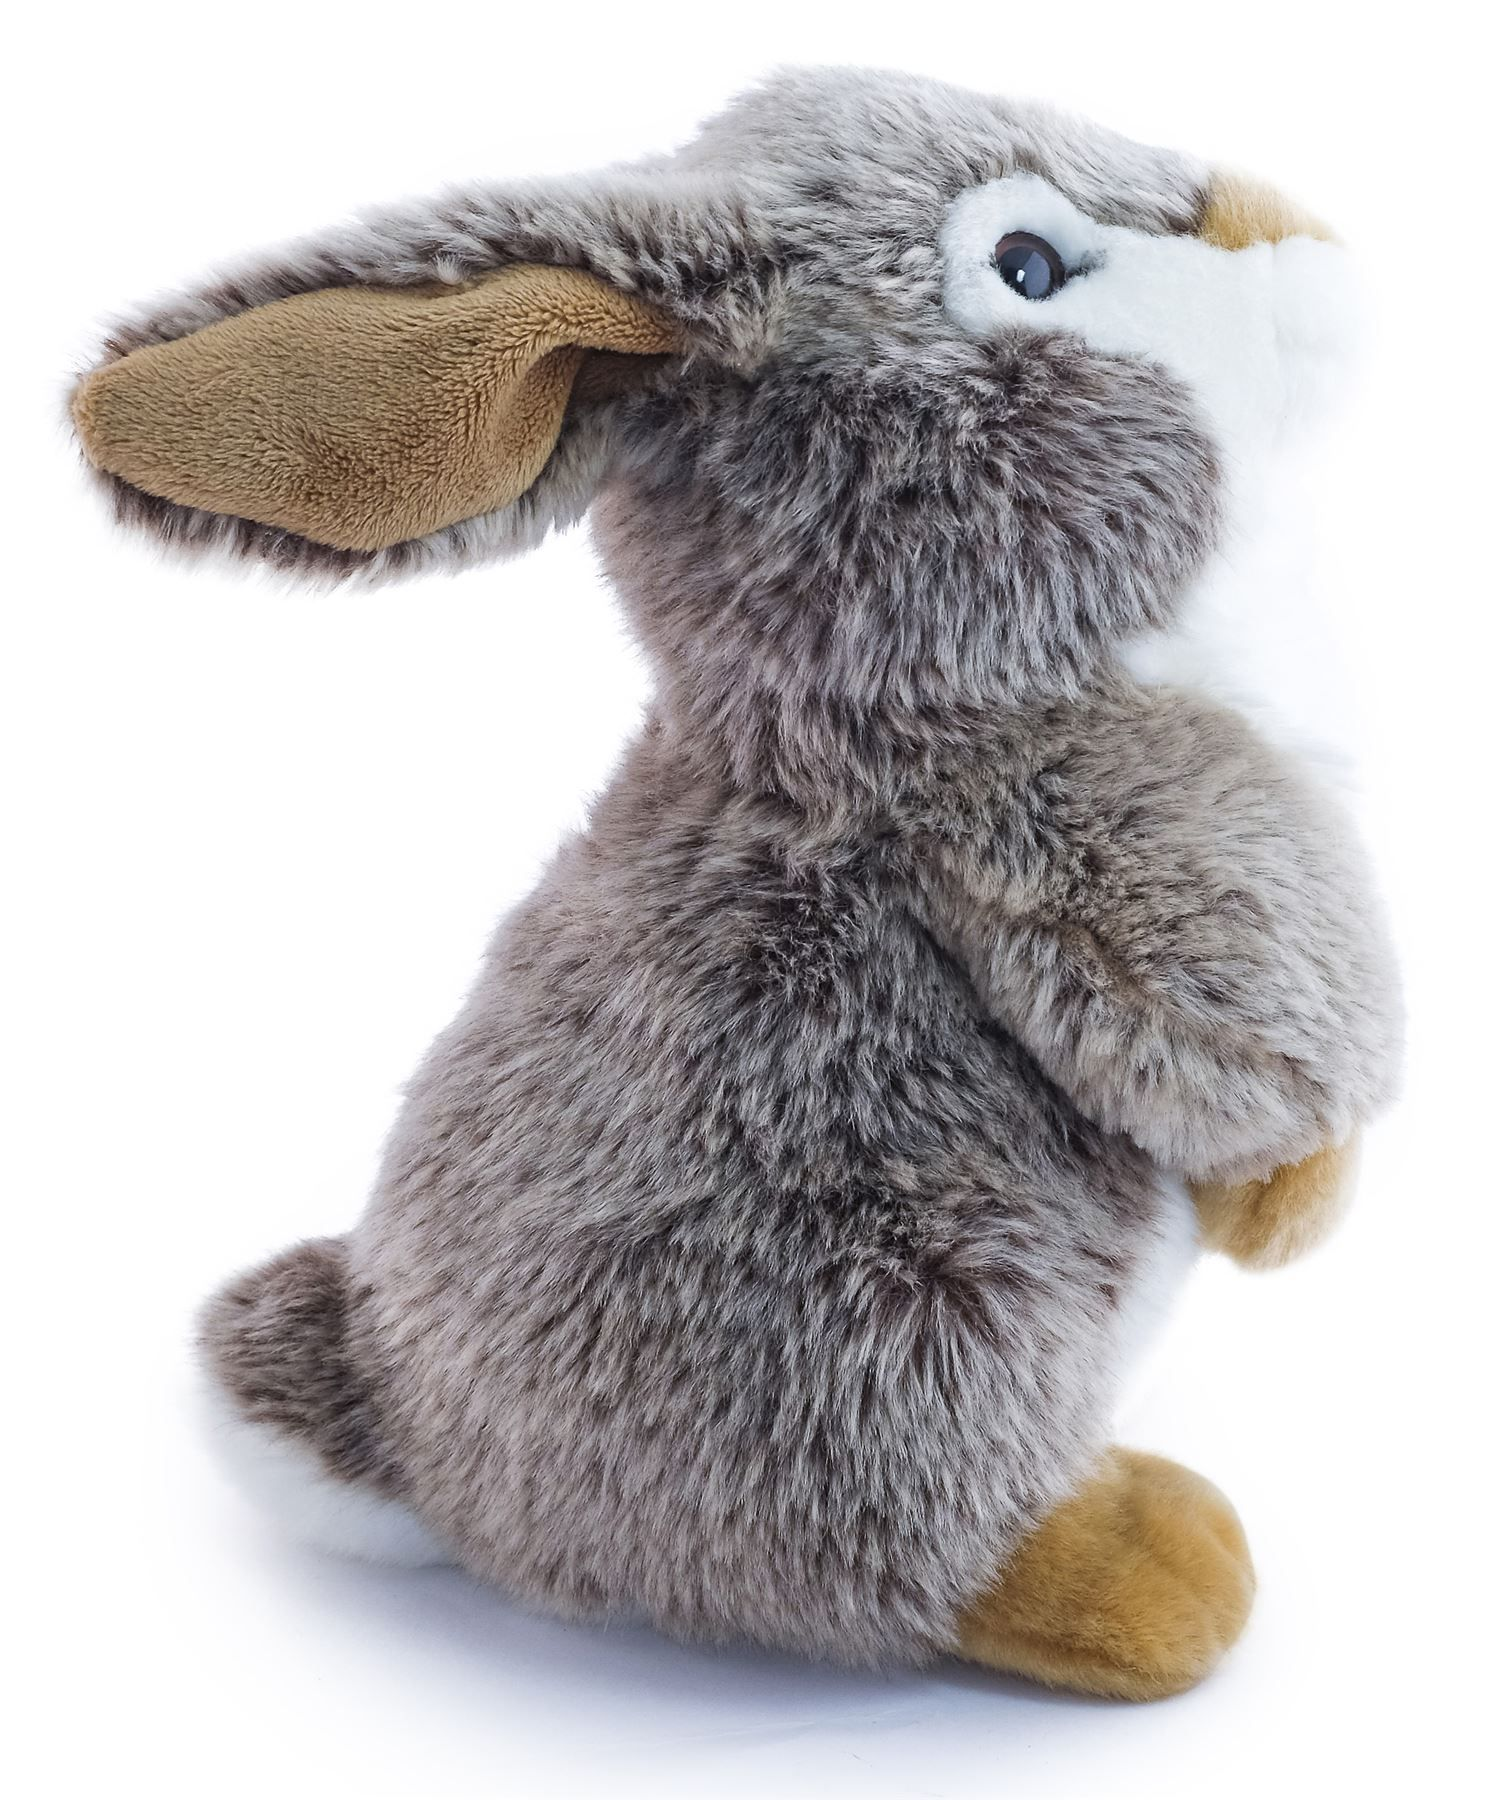 Robin the Big Cheek Rabbit 10 Inch Stuffed Animal Plush